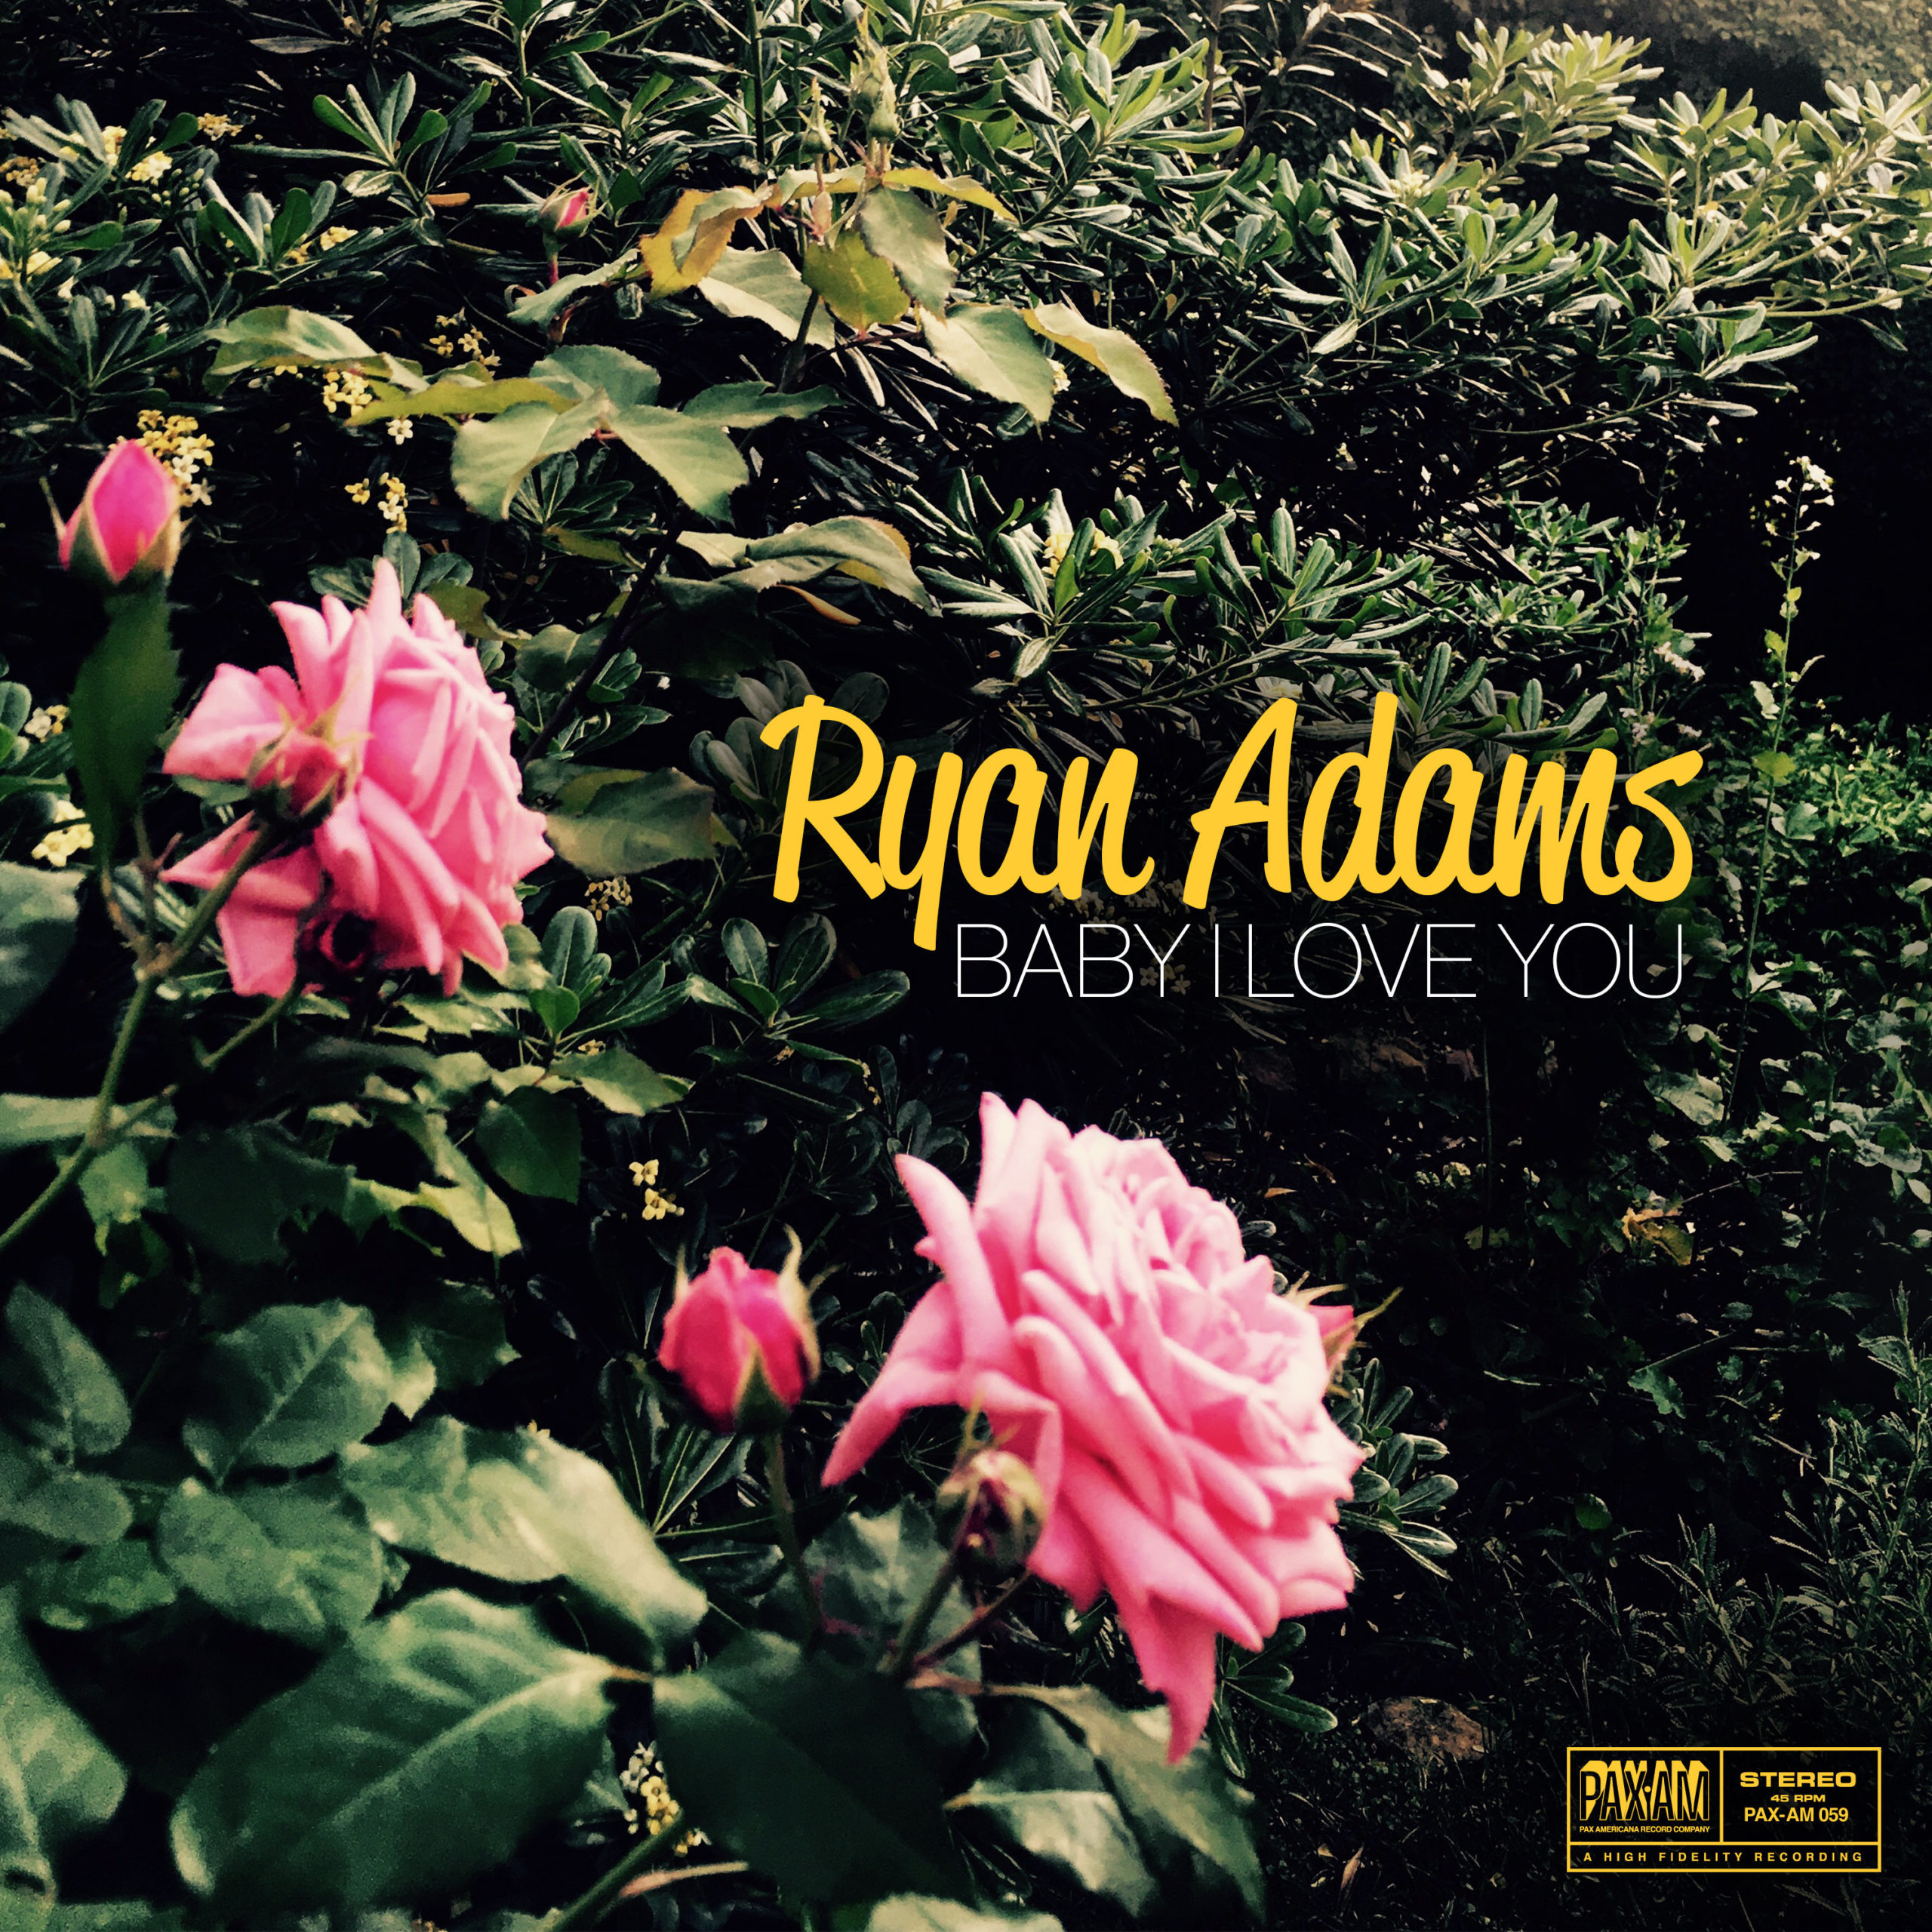 Ryan Adams Baby I Love You single